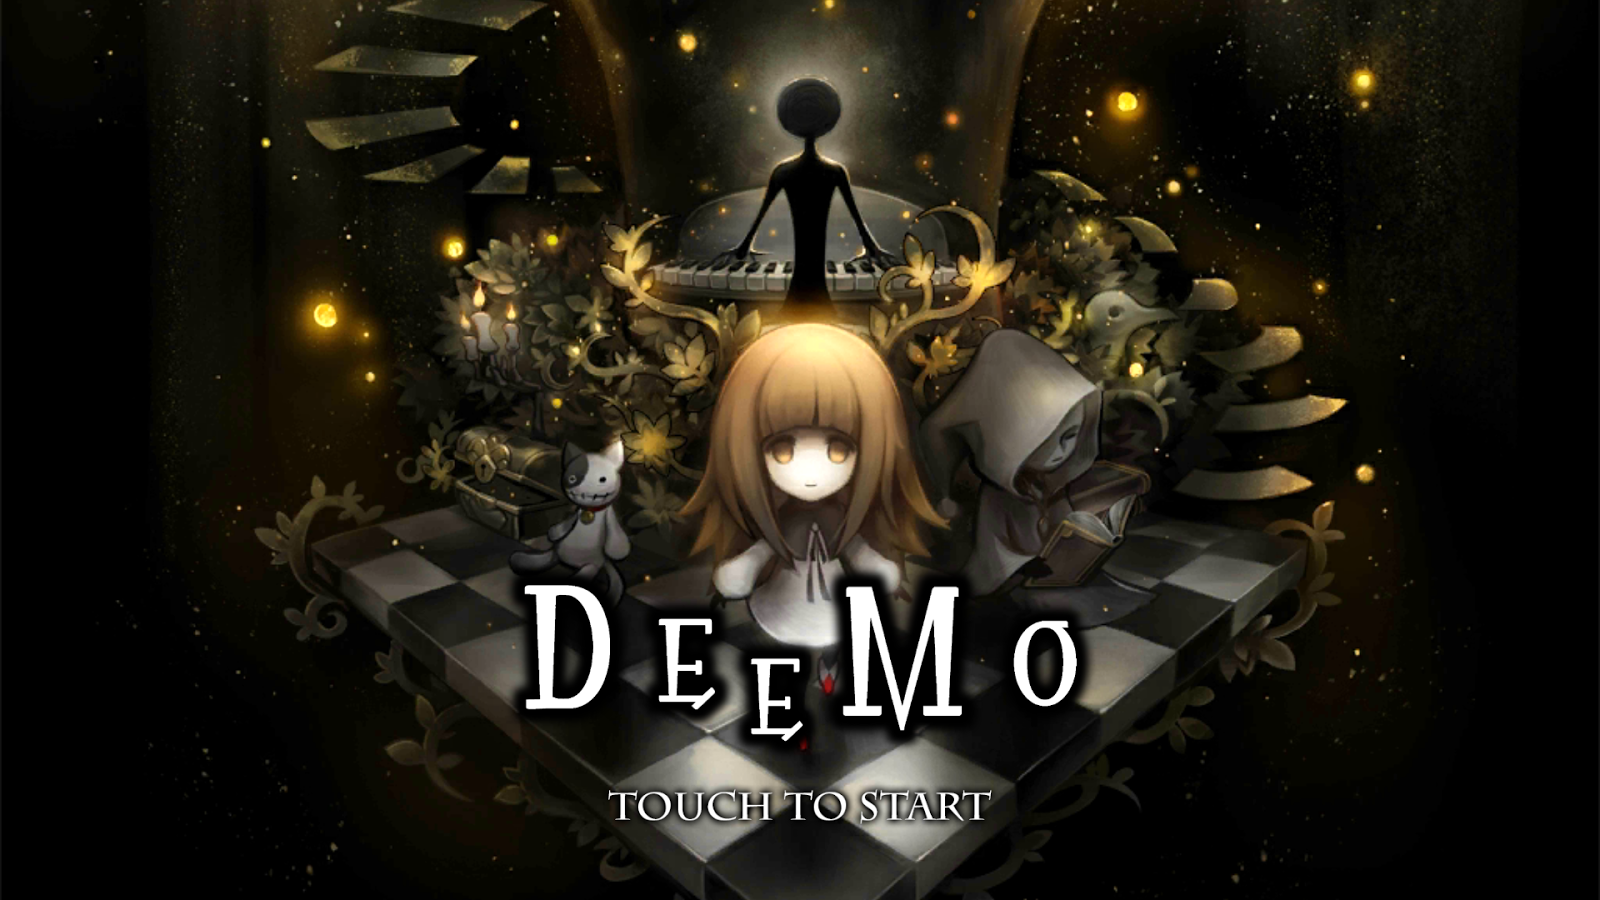 Deemo Launching In US And EU On September 28